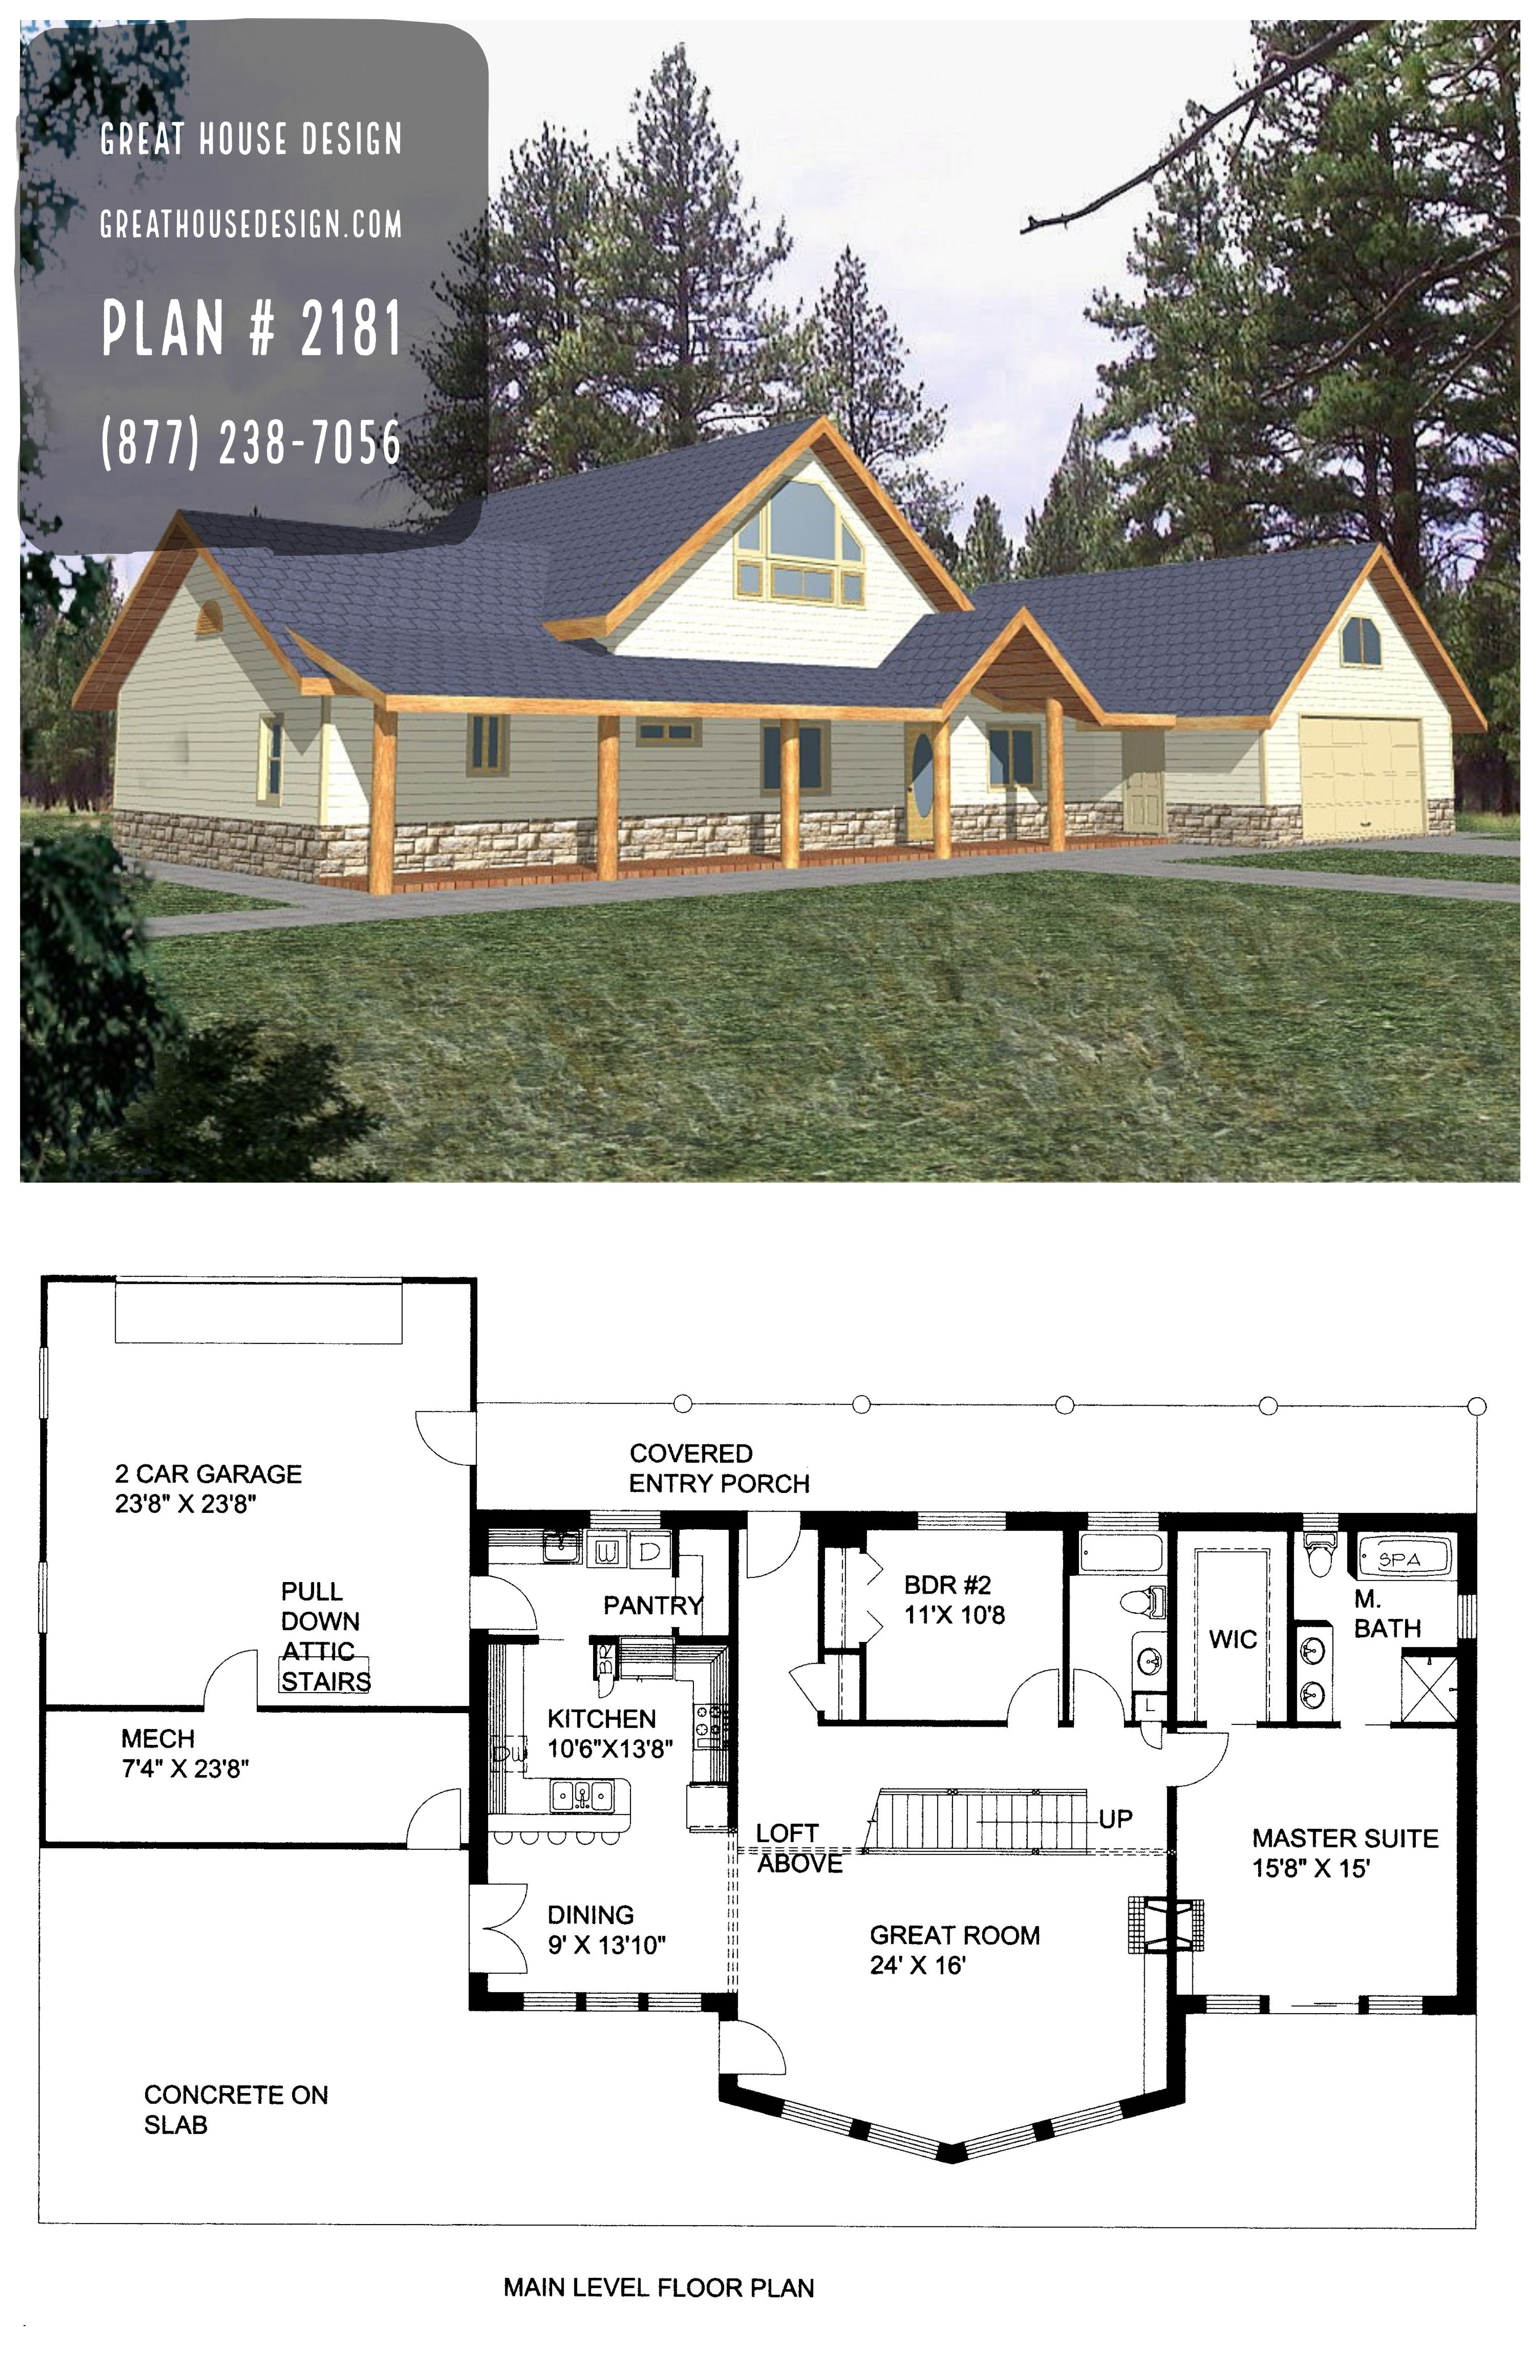 Pin On Insulated Concrete Form House Plans By Great House Design